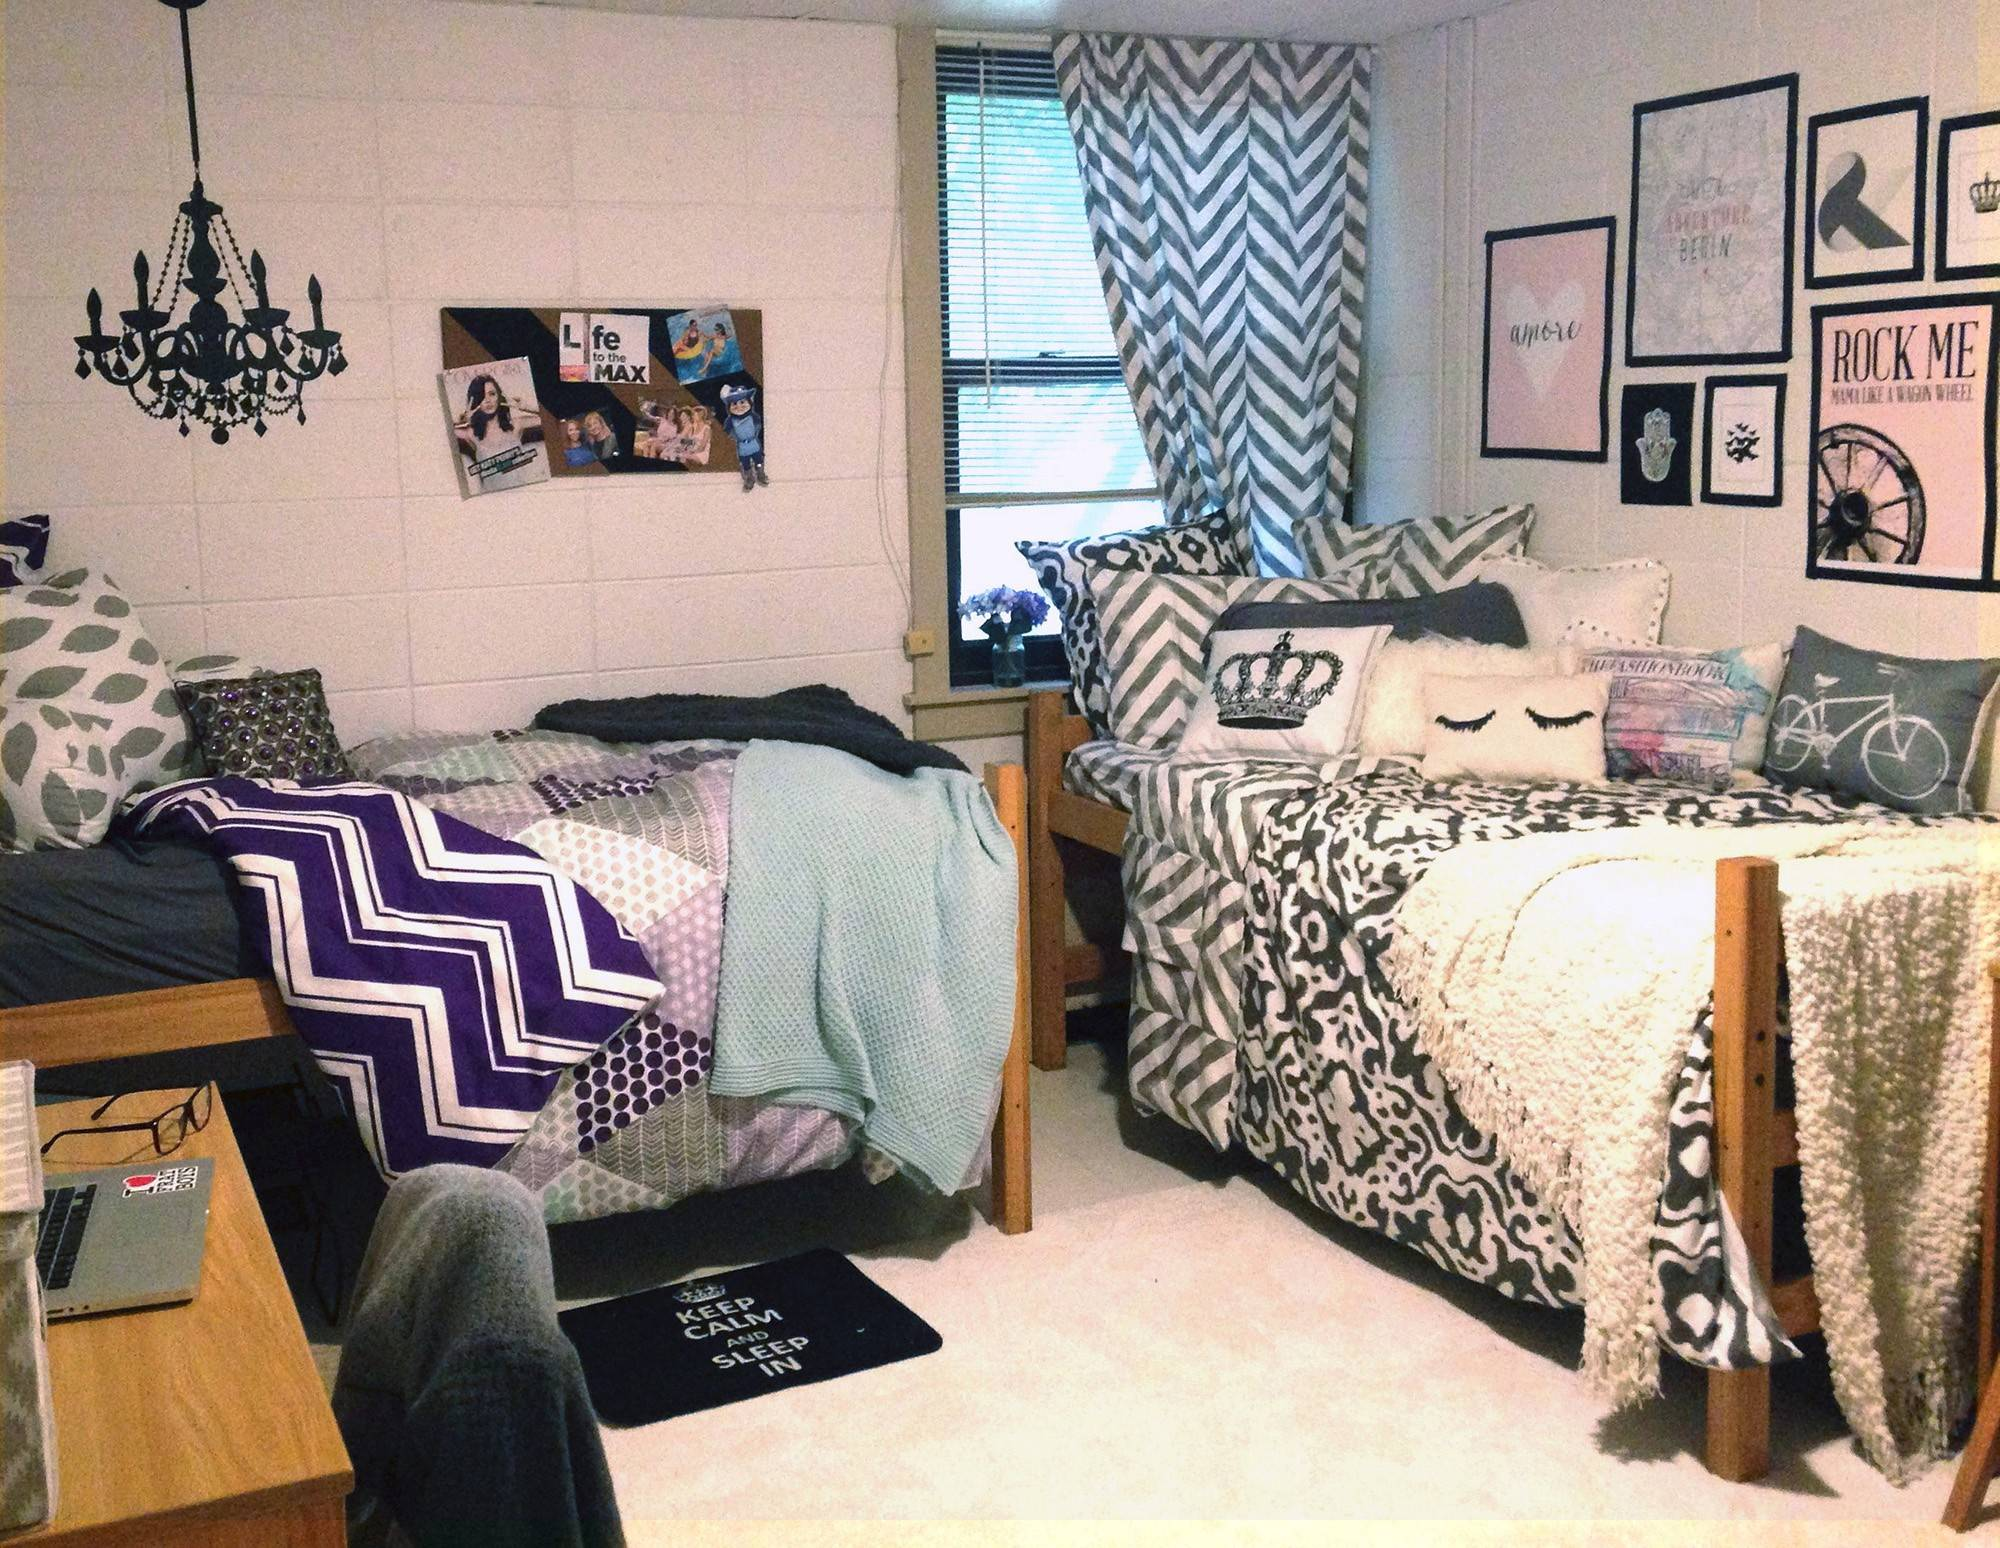 This dormitory room was decorated with help from dormify com an online design business